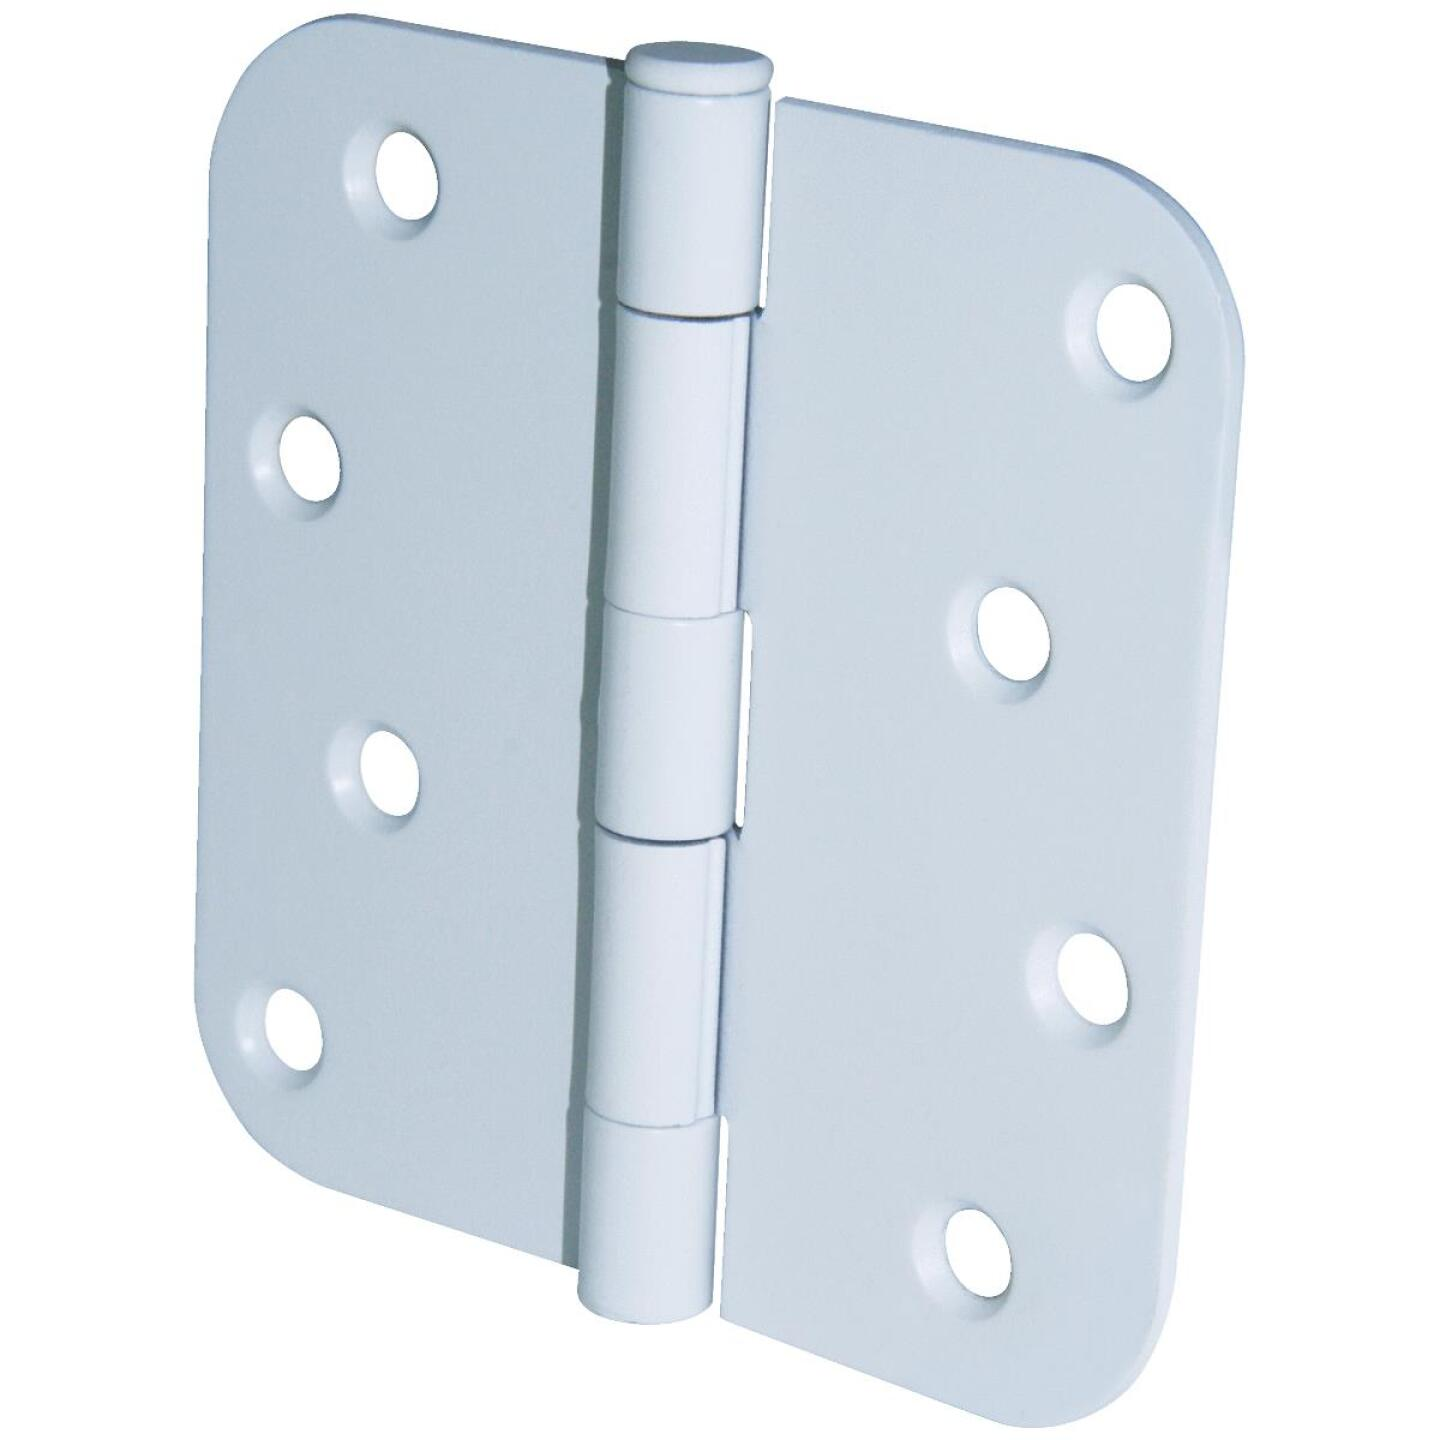 Ultra Hardware 4 In. x 5/8 In. Radius White Door Hinge (3-Pack) Image 1